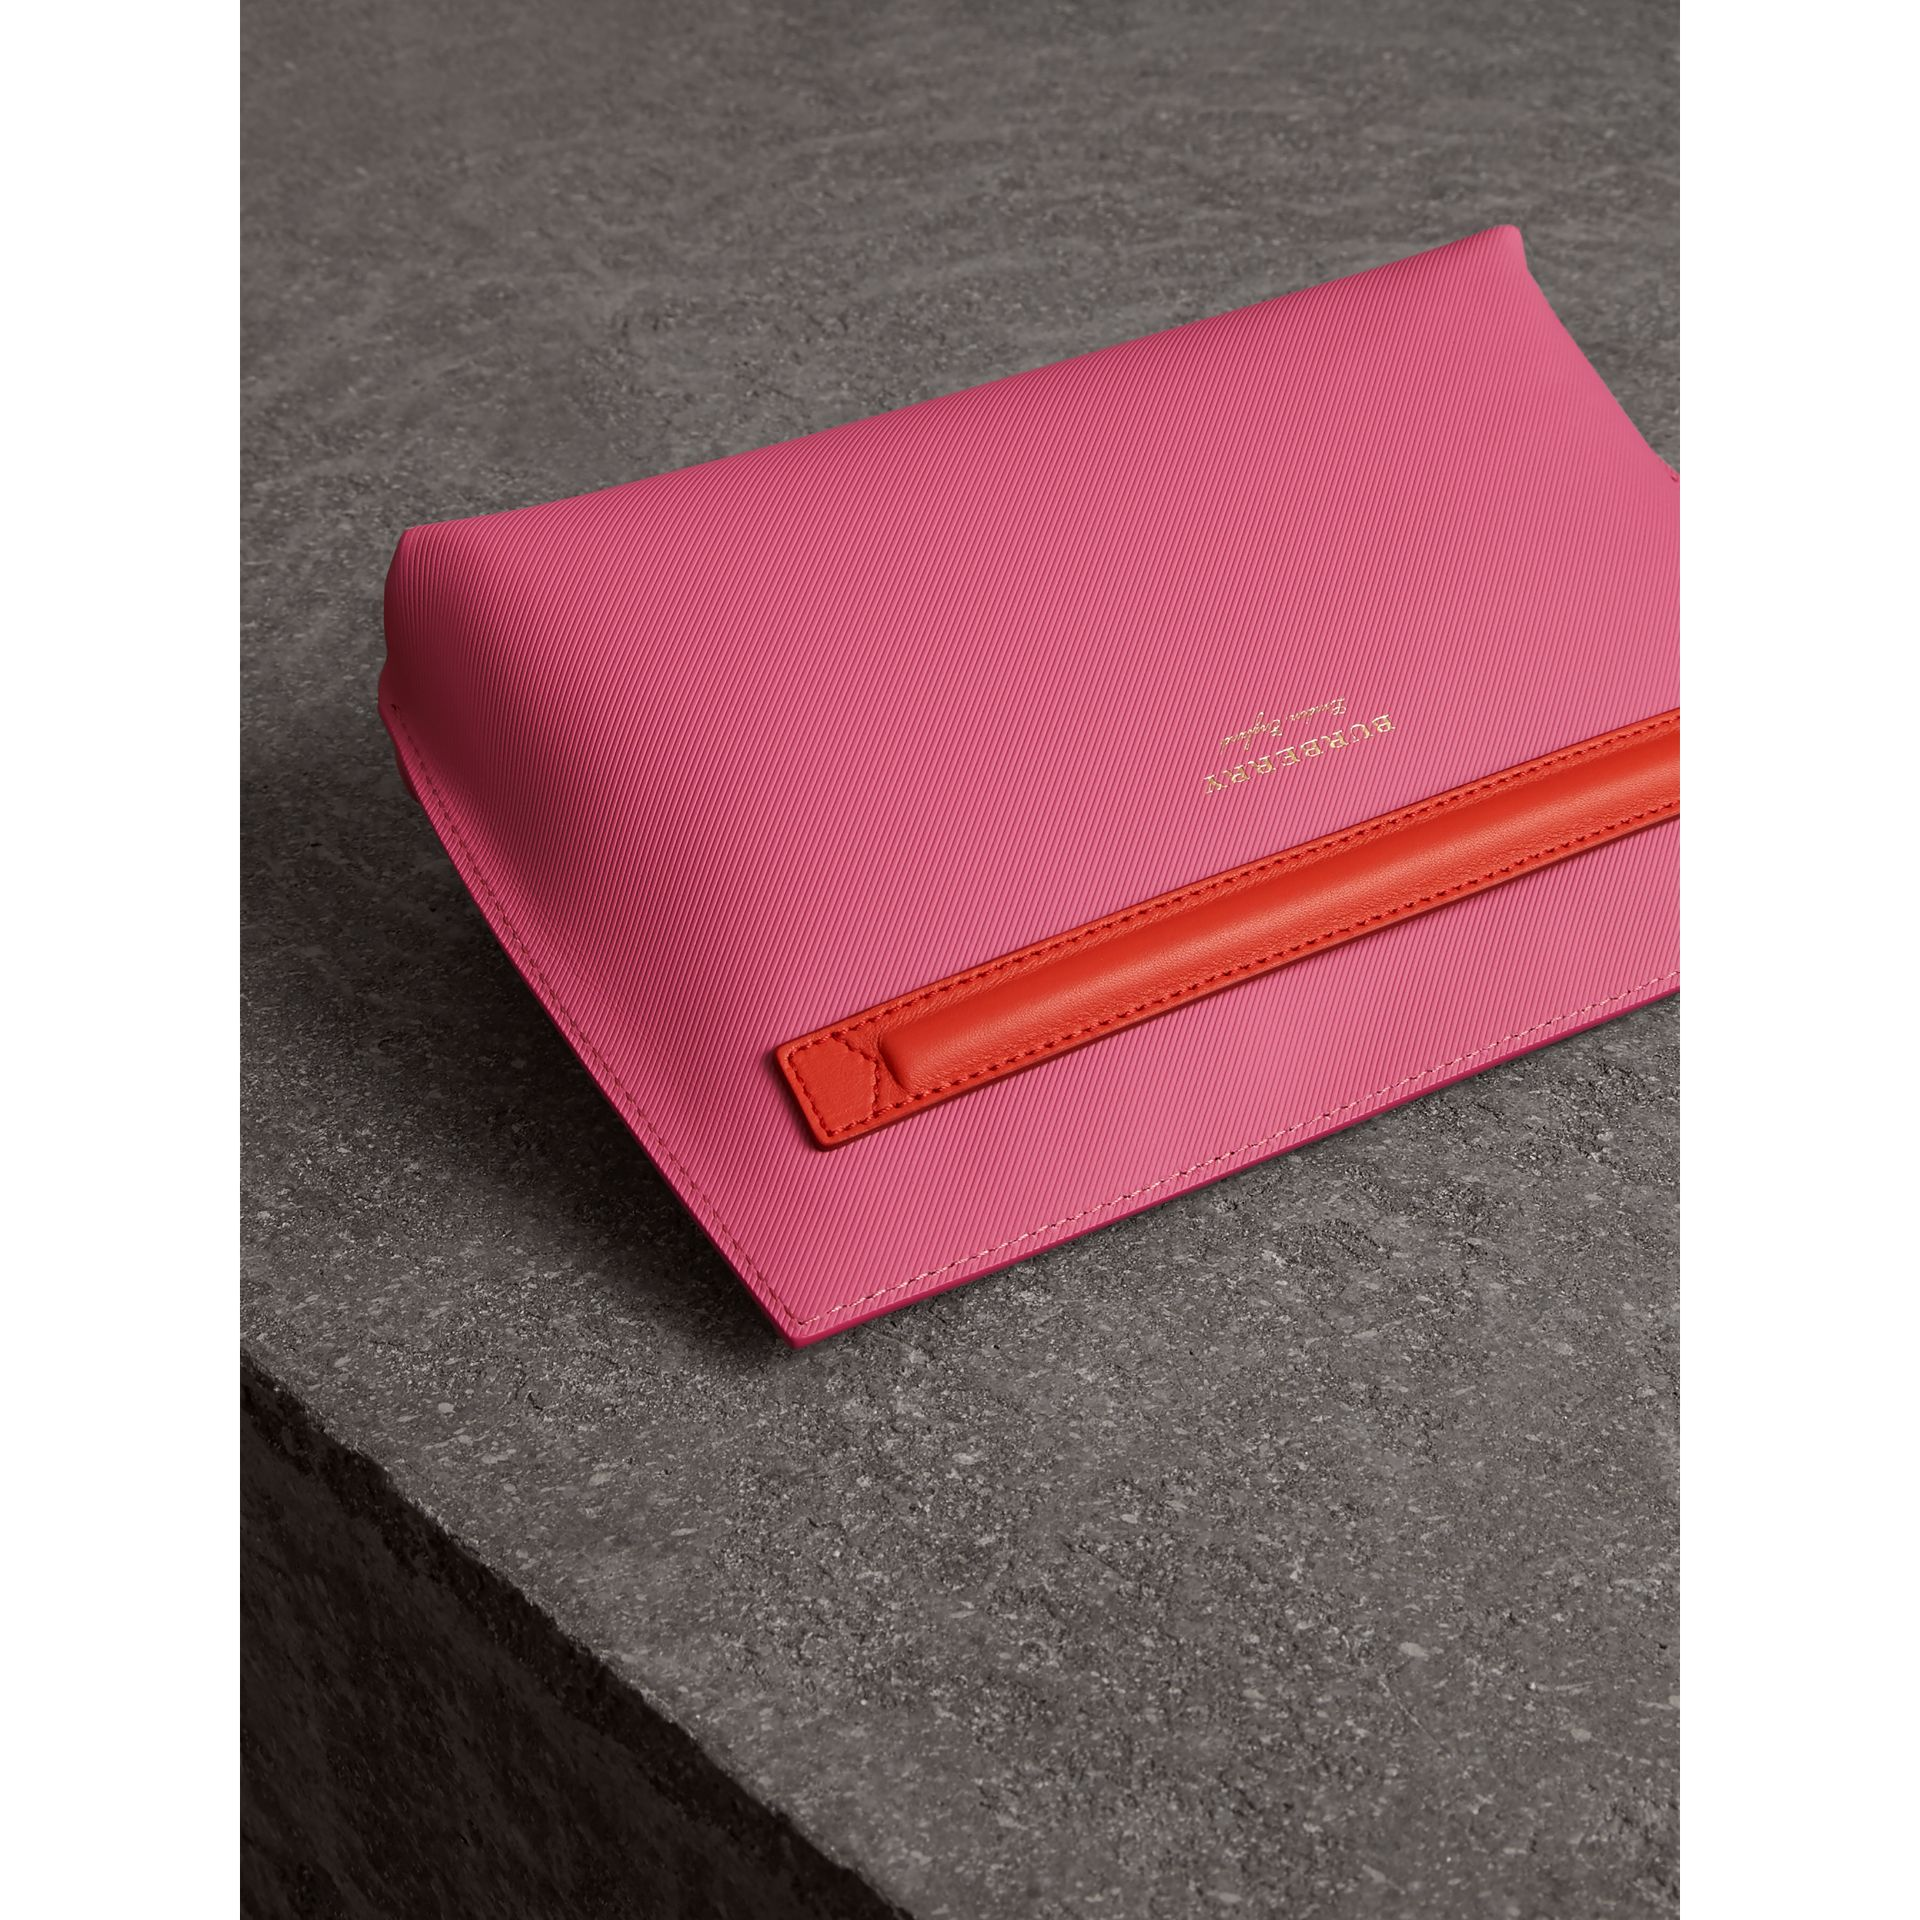 Two-tone Trench Leather Wristlet Pouch in Rose Pink - Women | Burberry - gallery image 2